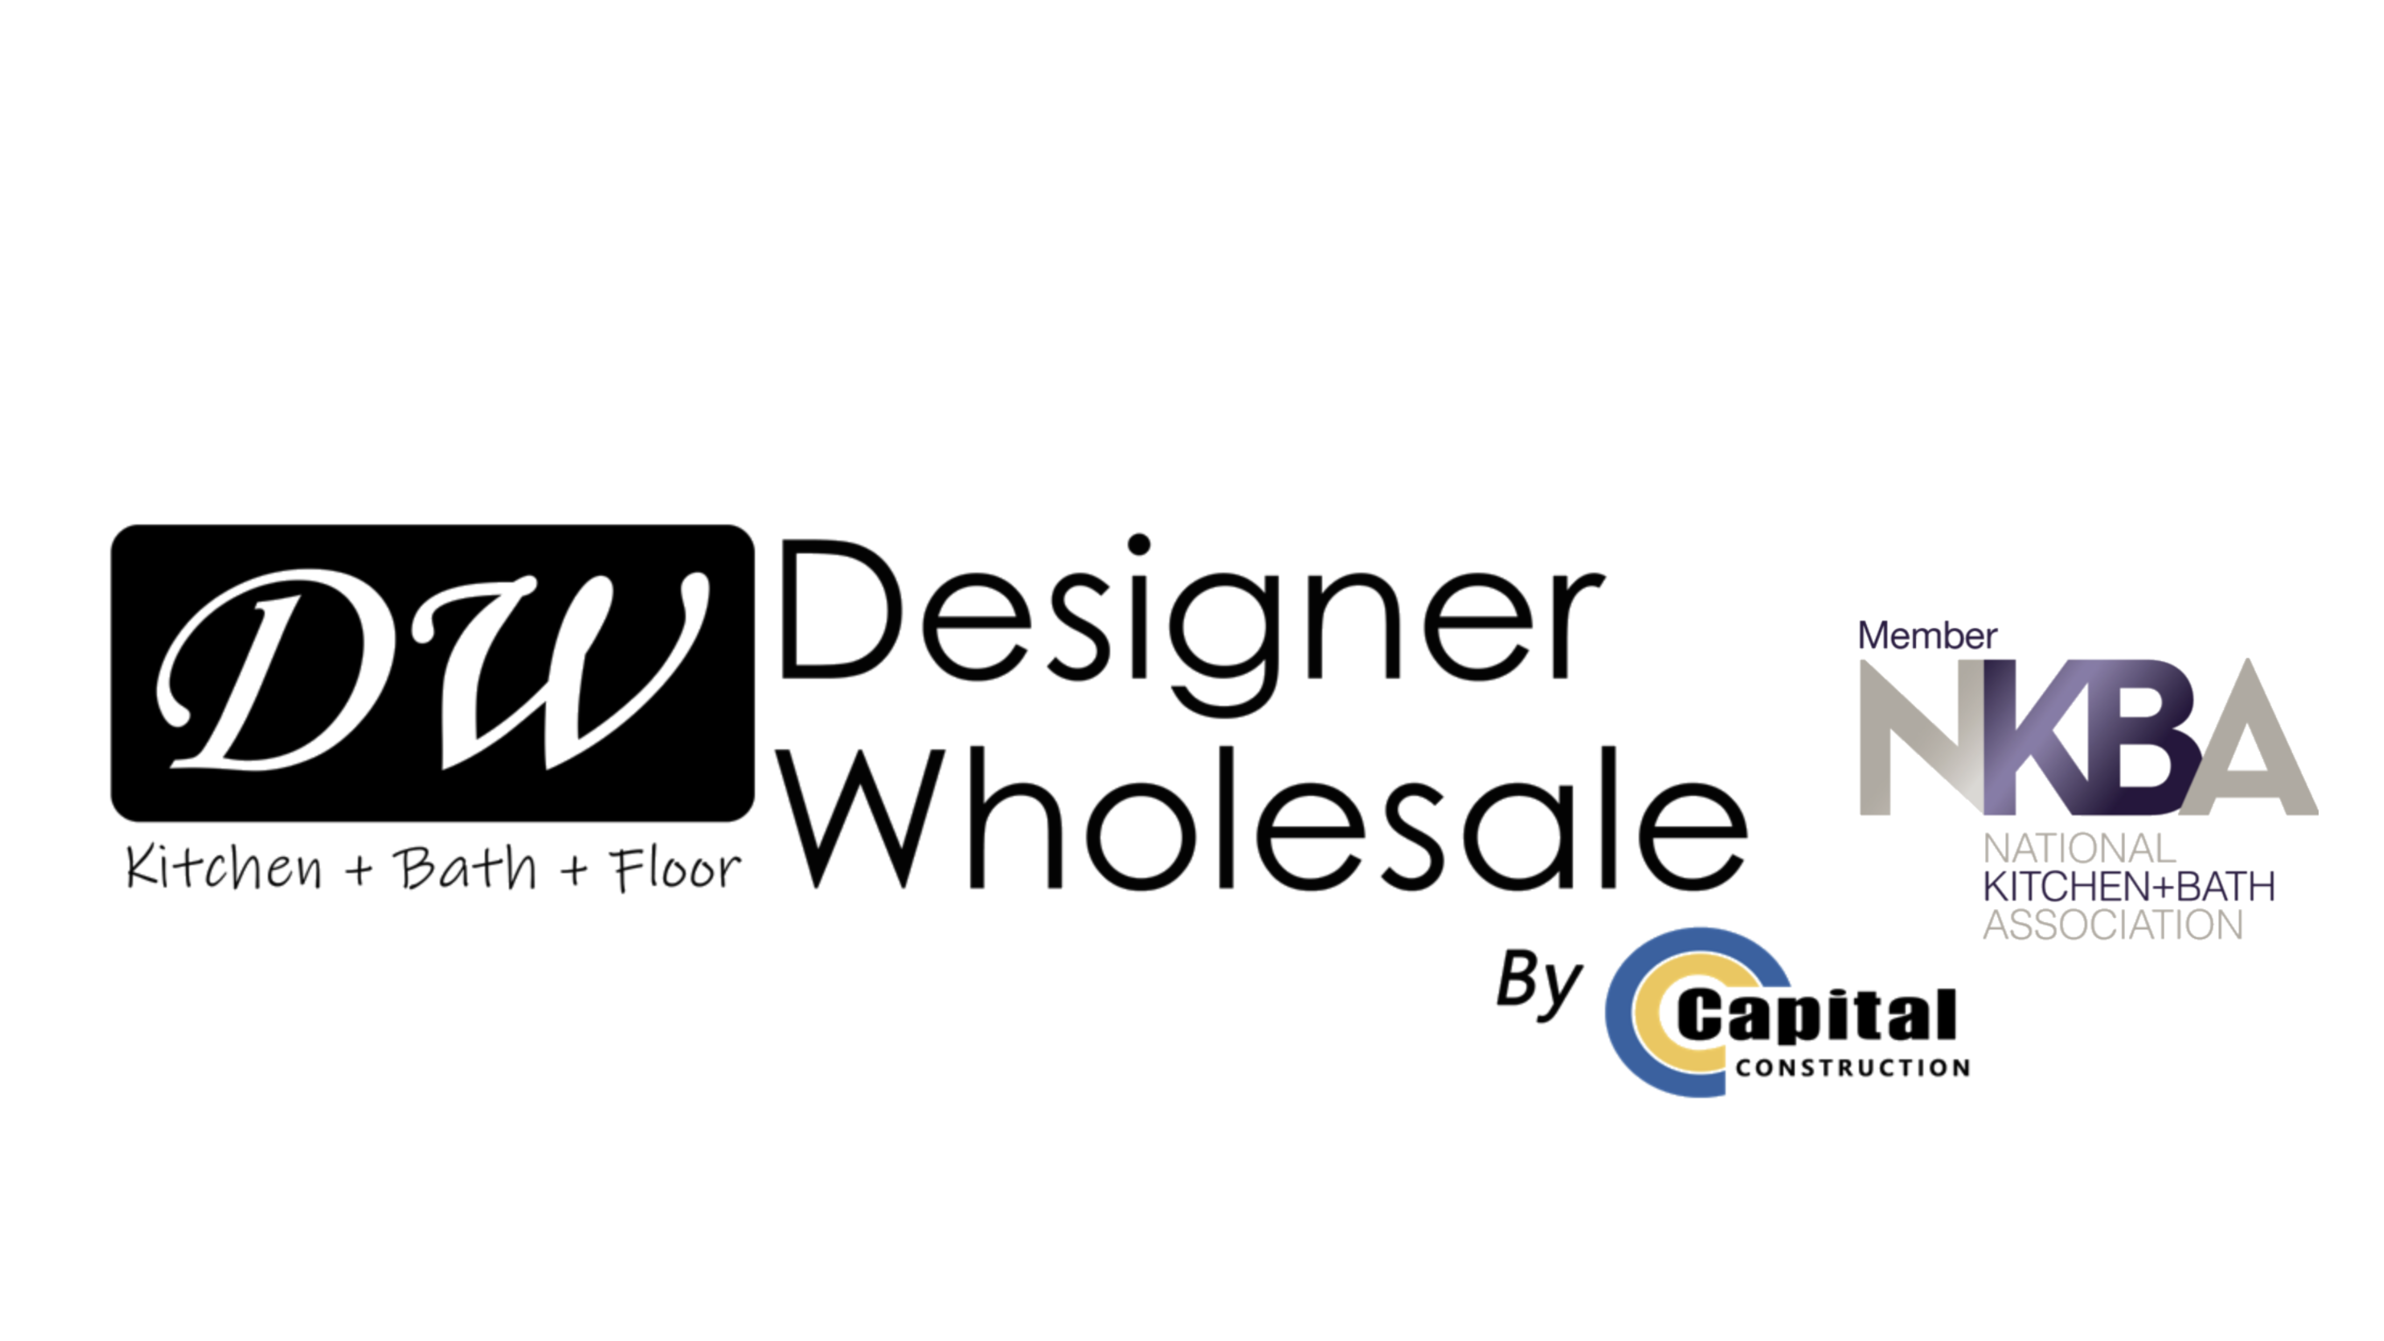 kitchen remodeler logo of designer wholesale